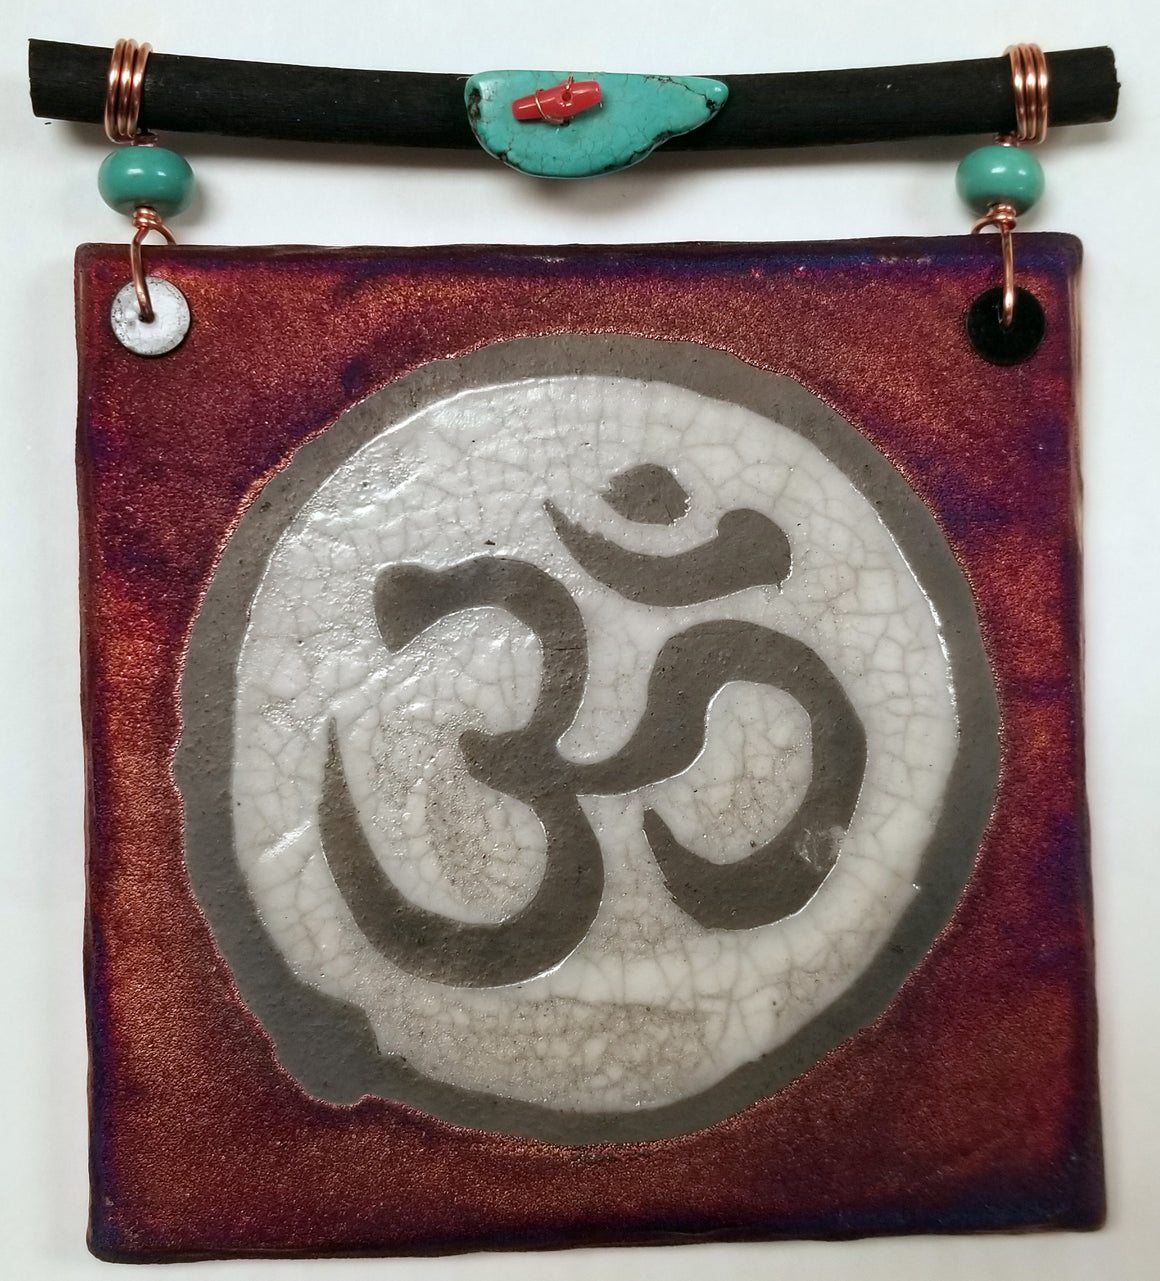 OM Dreamcatcher Tile from Raku Pottery